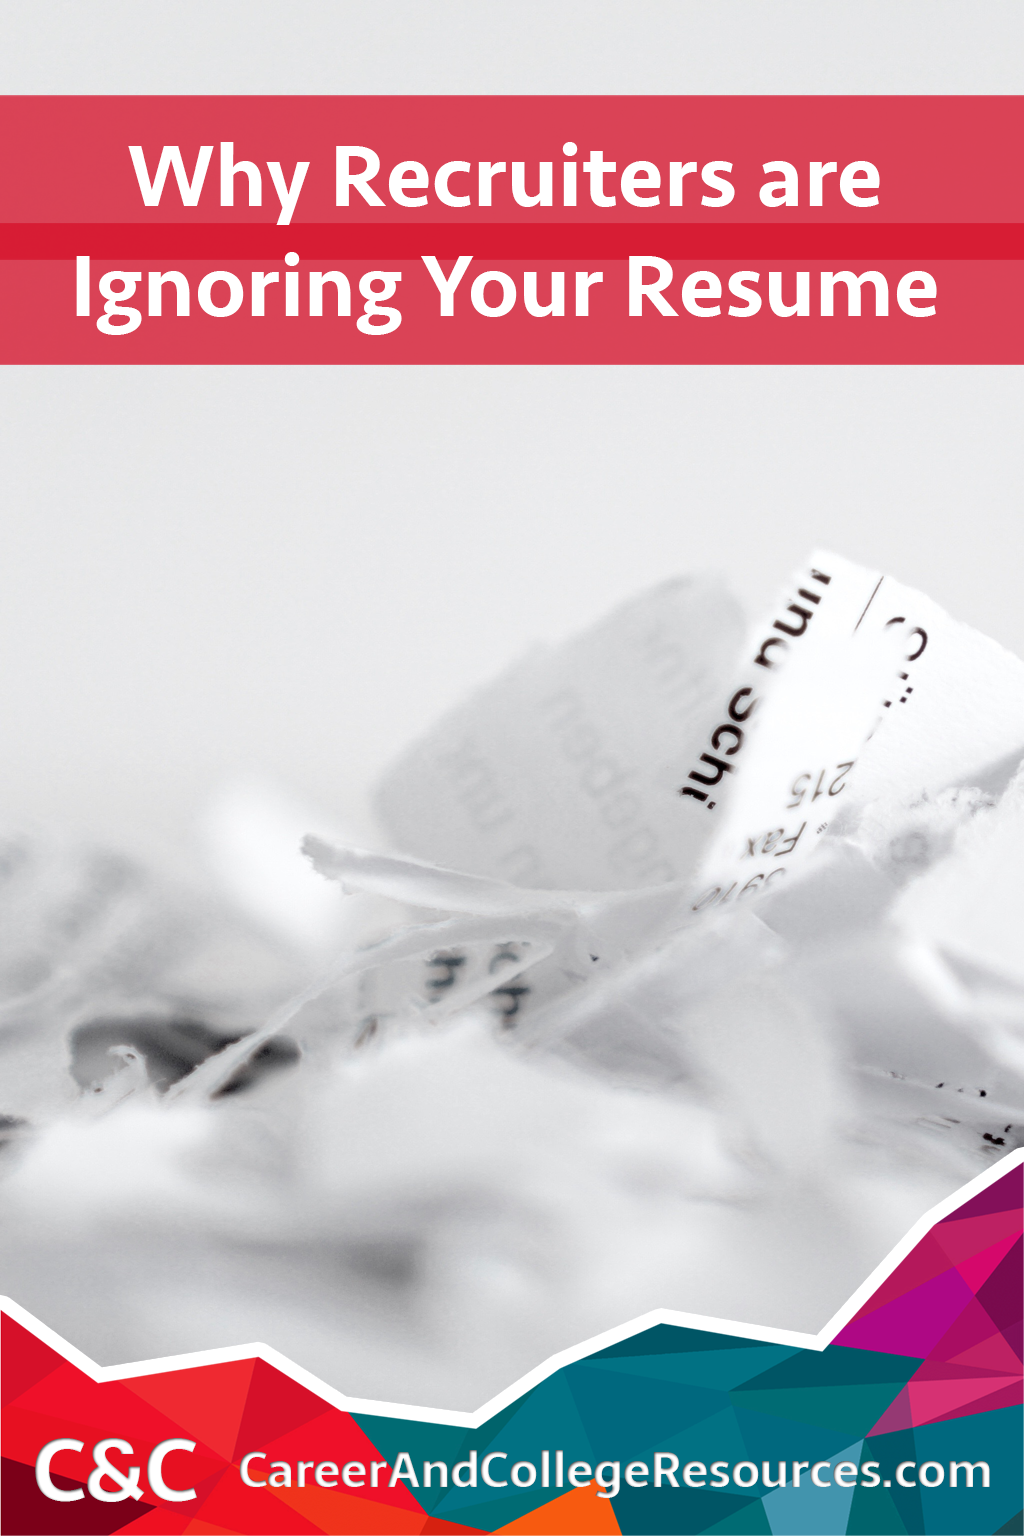 Why recruiters are ignoring your resume